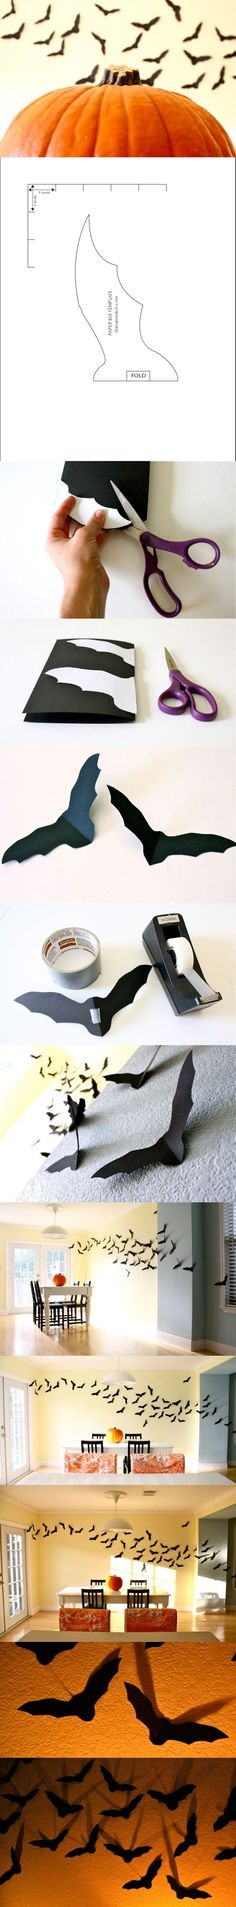 Wall of Bats Click Pic for 27 DIY Halloween Decorating Ideas for - halloween do it yourself decorations